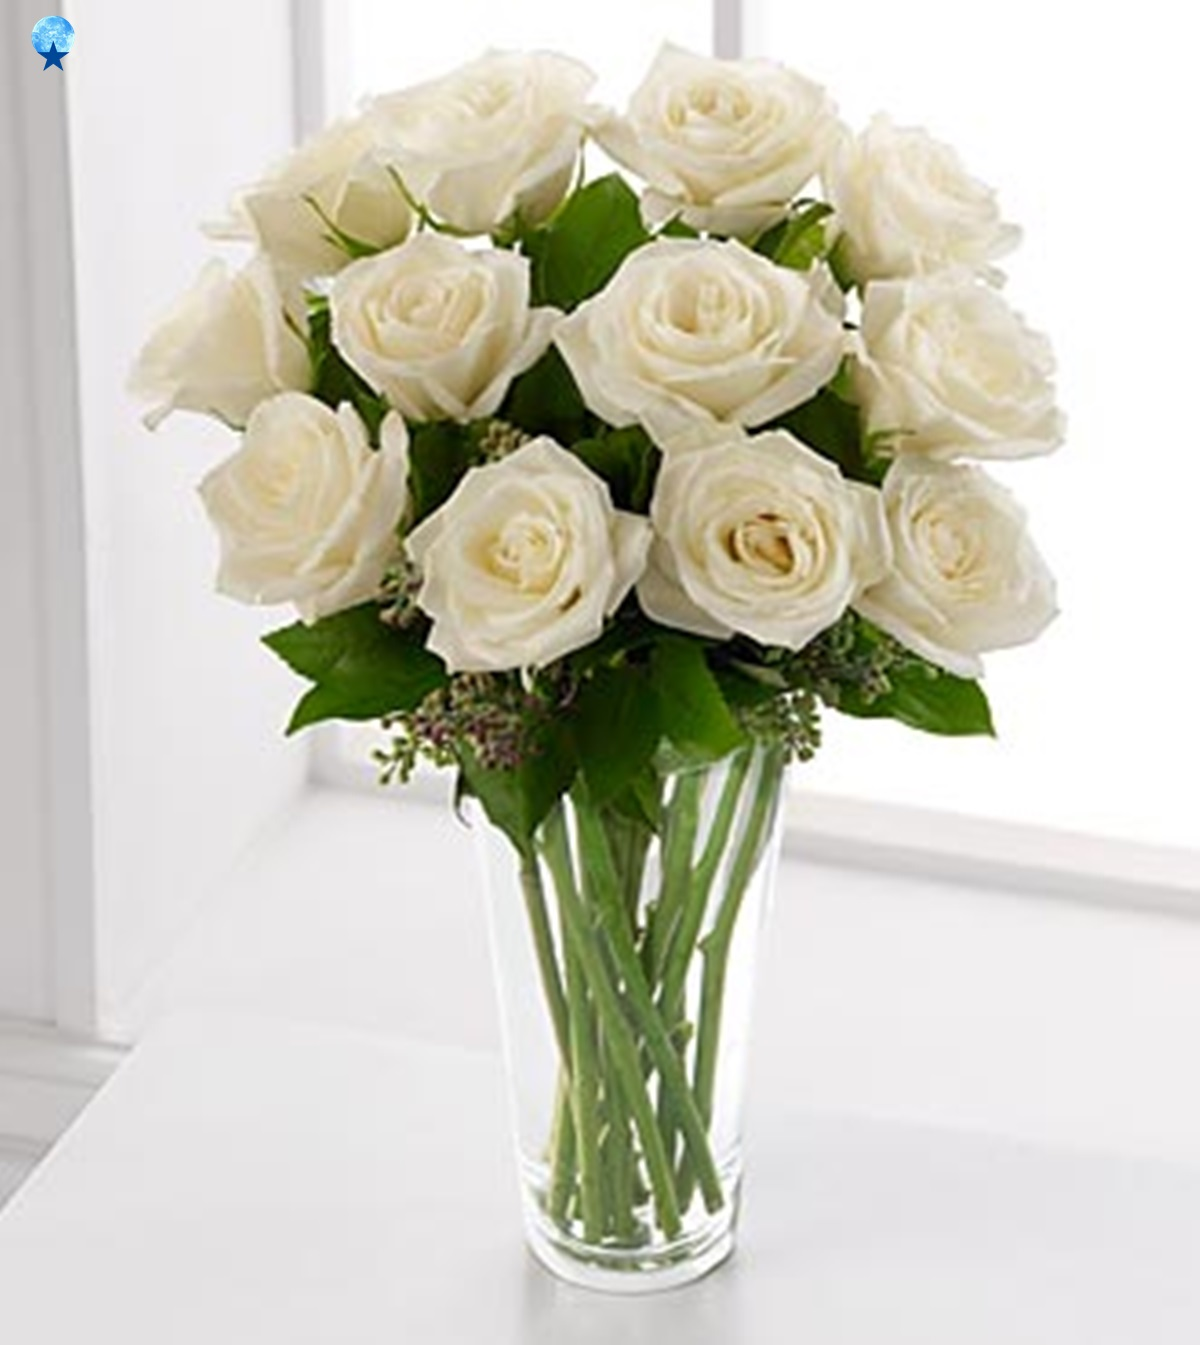 Hd flowers white roses flowers rose white bunch rose blooms the white bunch has been a custom since queen victorias wedding in l840 it was in this sentimental time that men of honor began sending blooms to their mightylinksfo